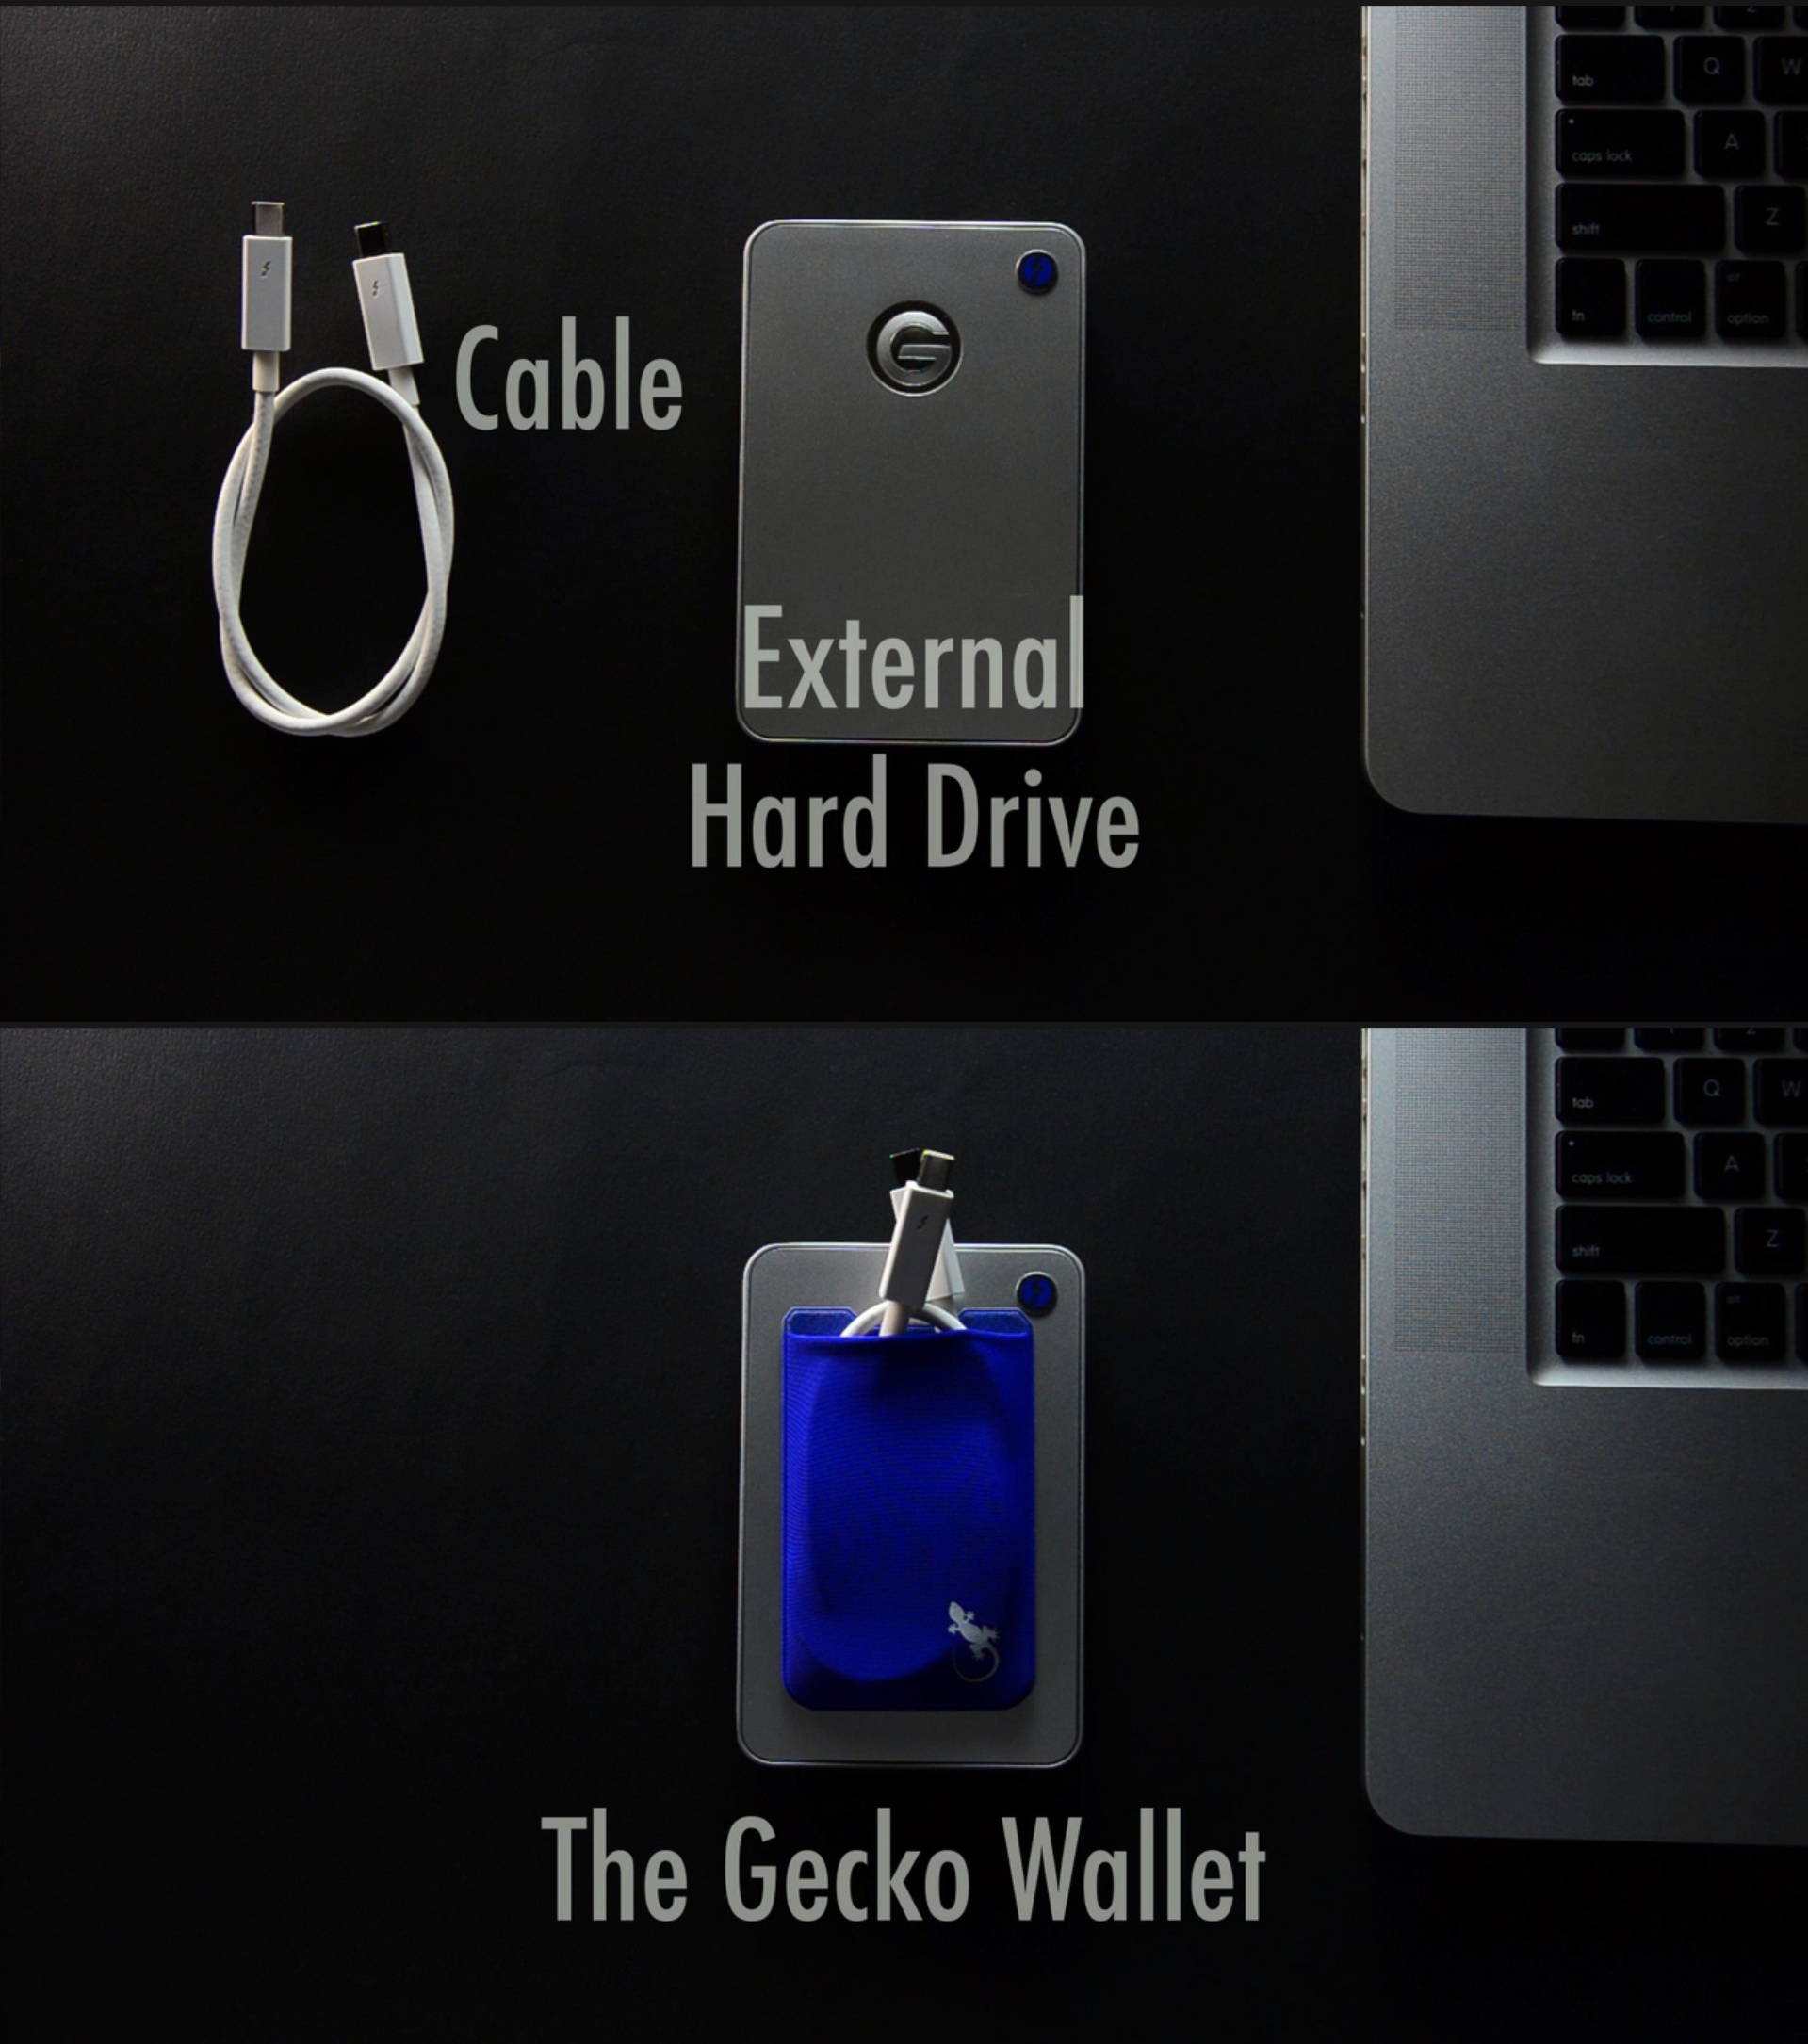 stretchable pocket for use on any device, hold your external hard drive wire.